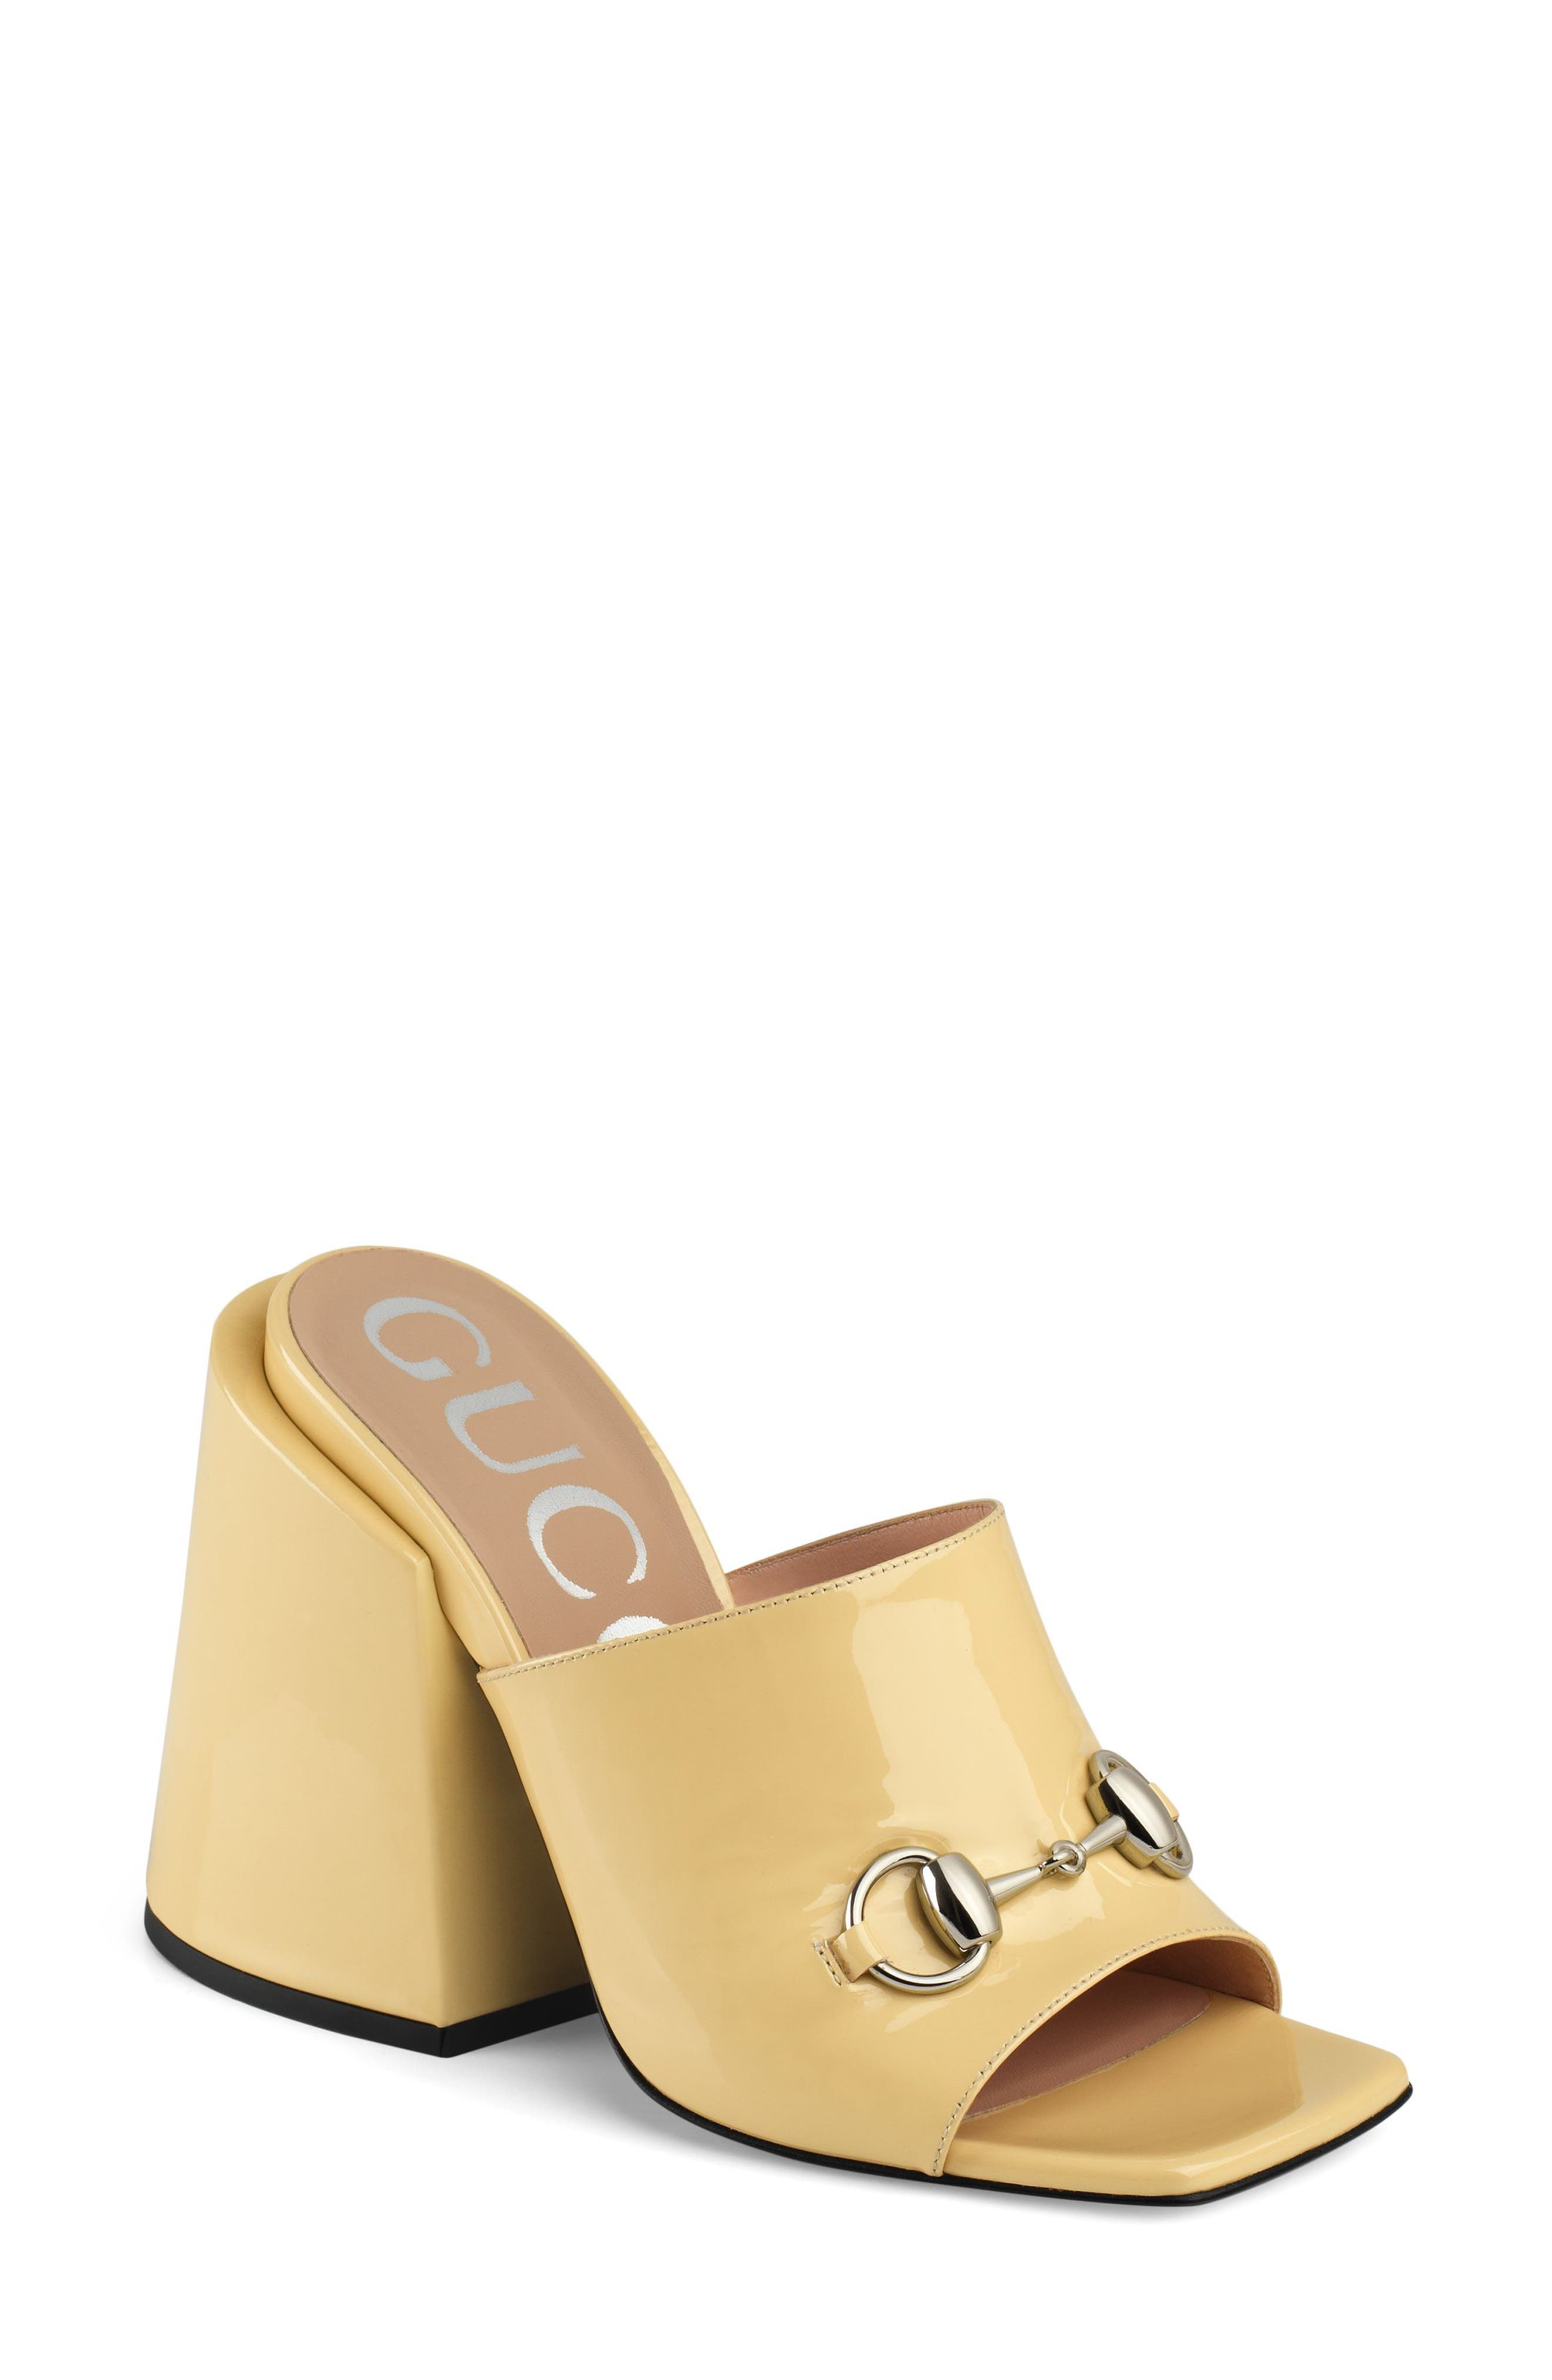 Lexi Slide Sandal, Main, color, BURRO